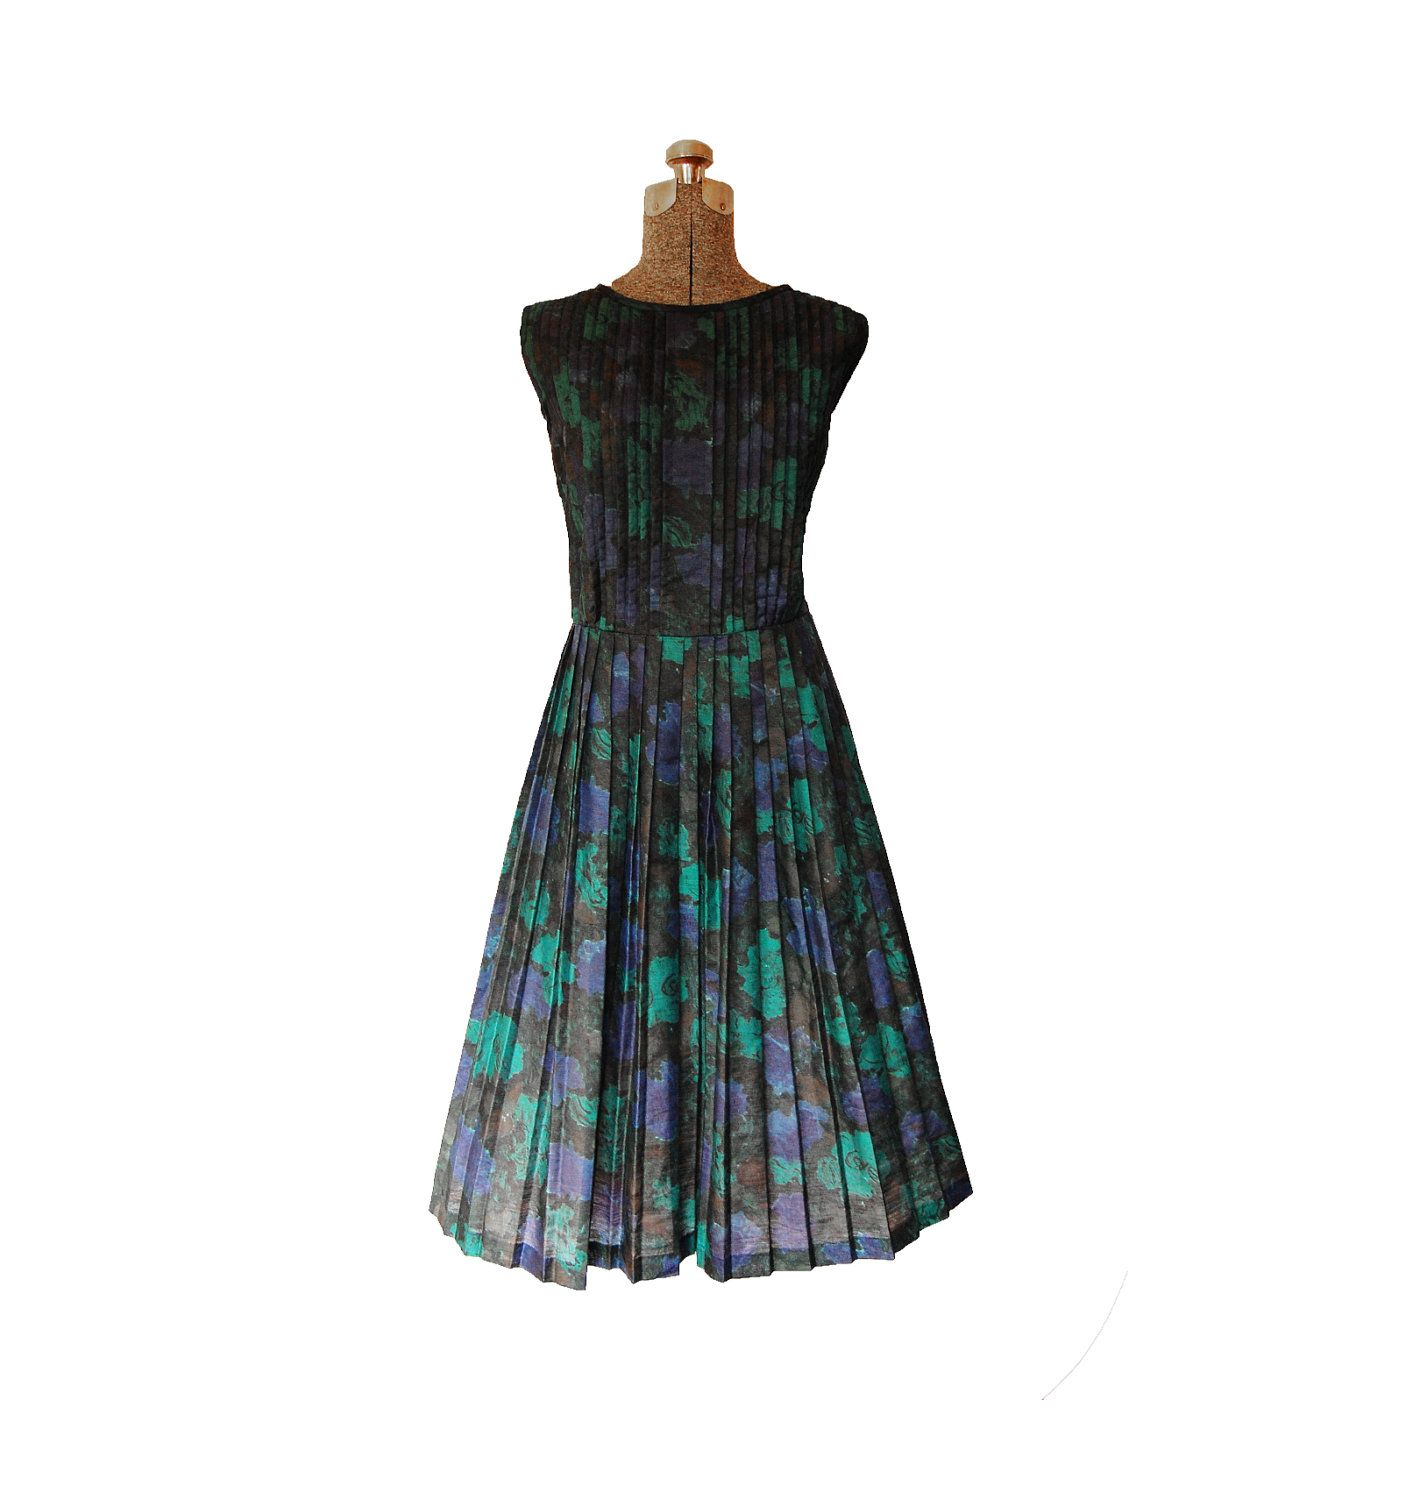 Vintage 1950s 50s Dress - Floral Cotton Printed Sleeveless Full ...